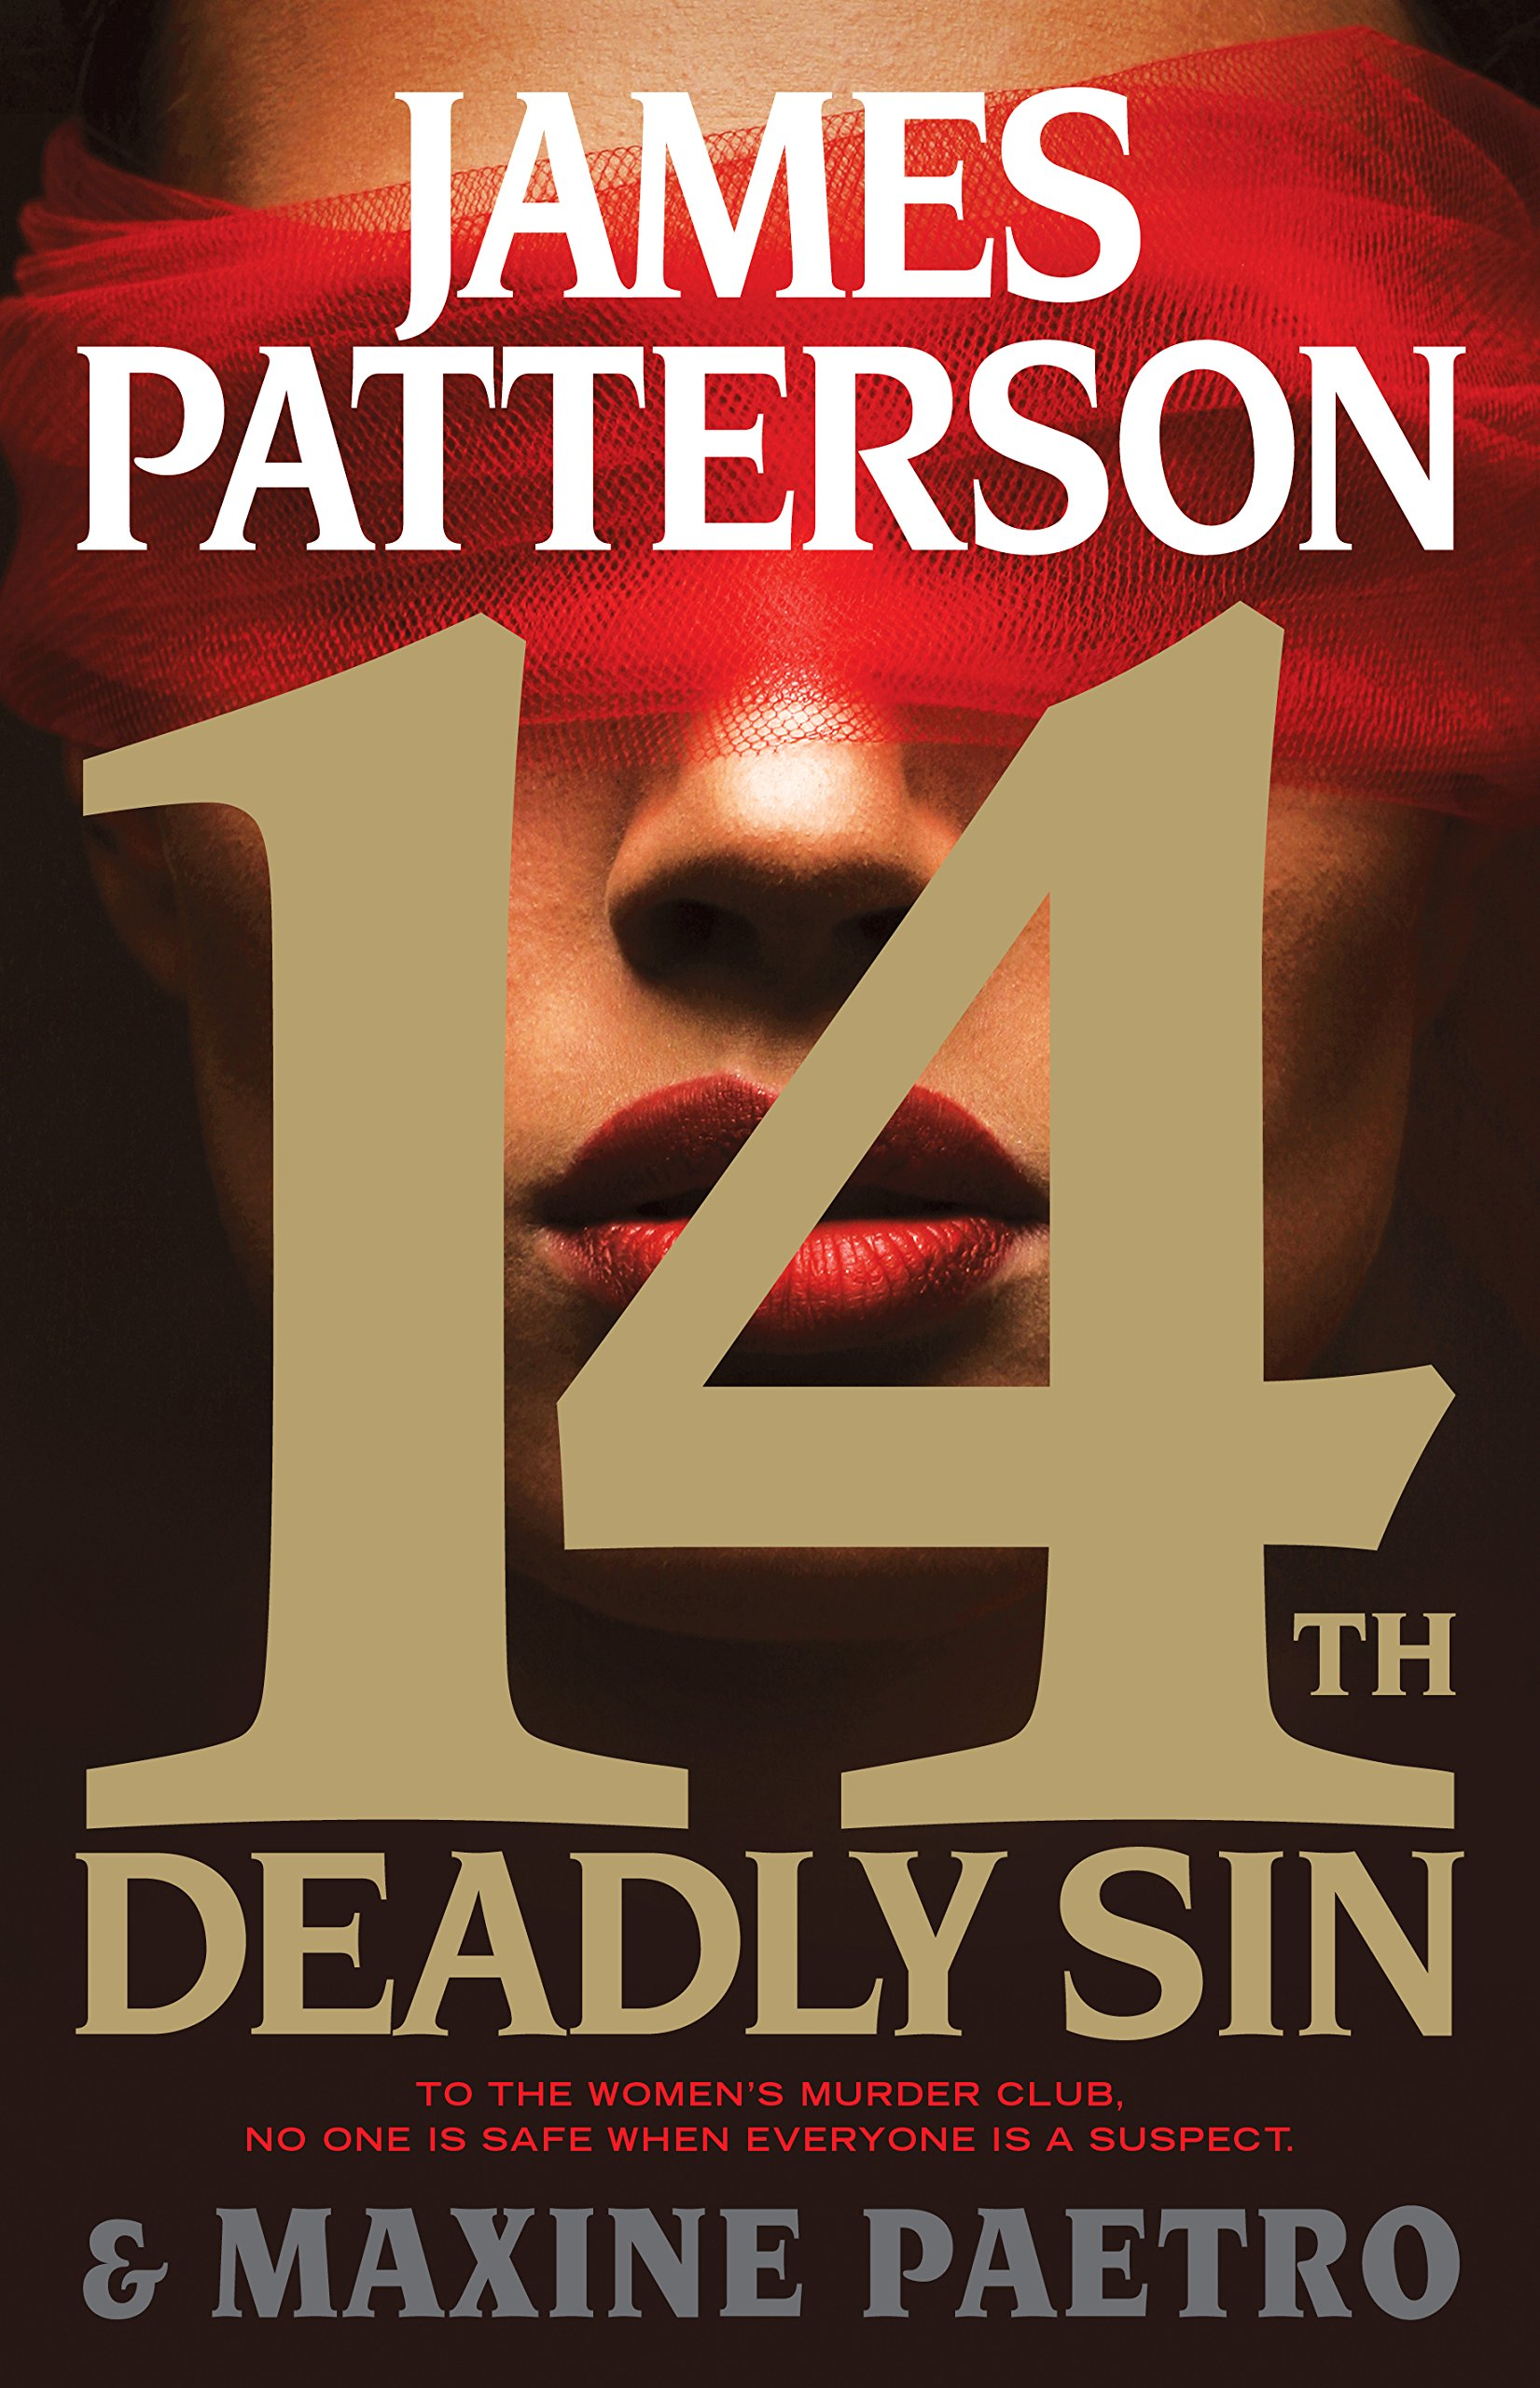 14th Deadly Sin (Women's Murder Club)  - James Patterson,Maxine Paetro